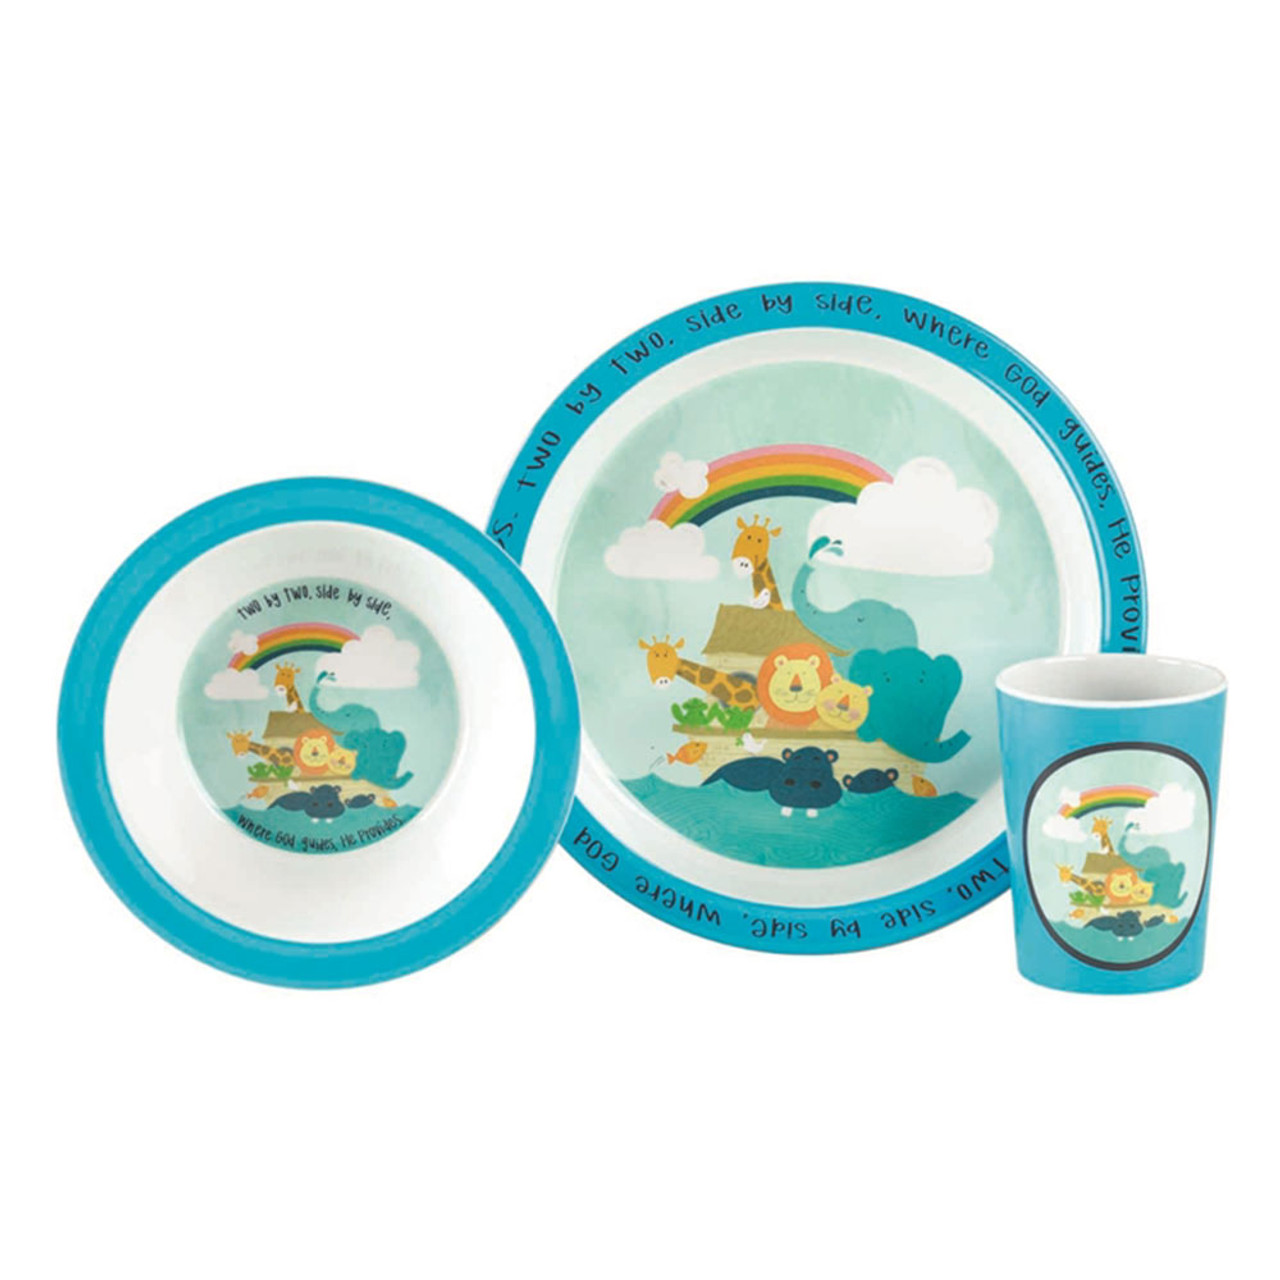 Noah's Ark Two by Two Dish Set